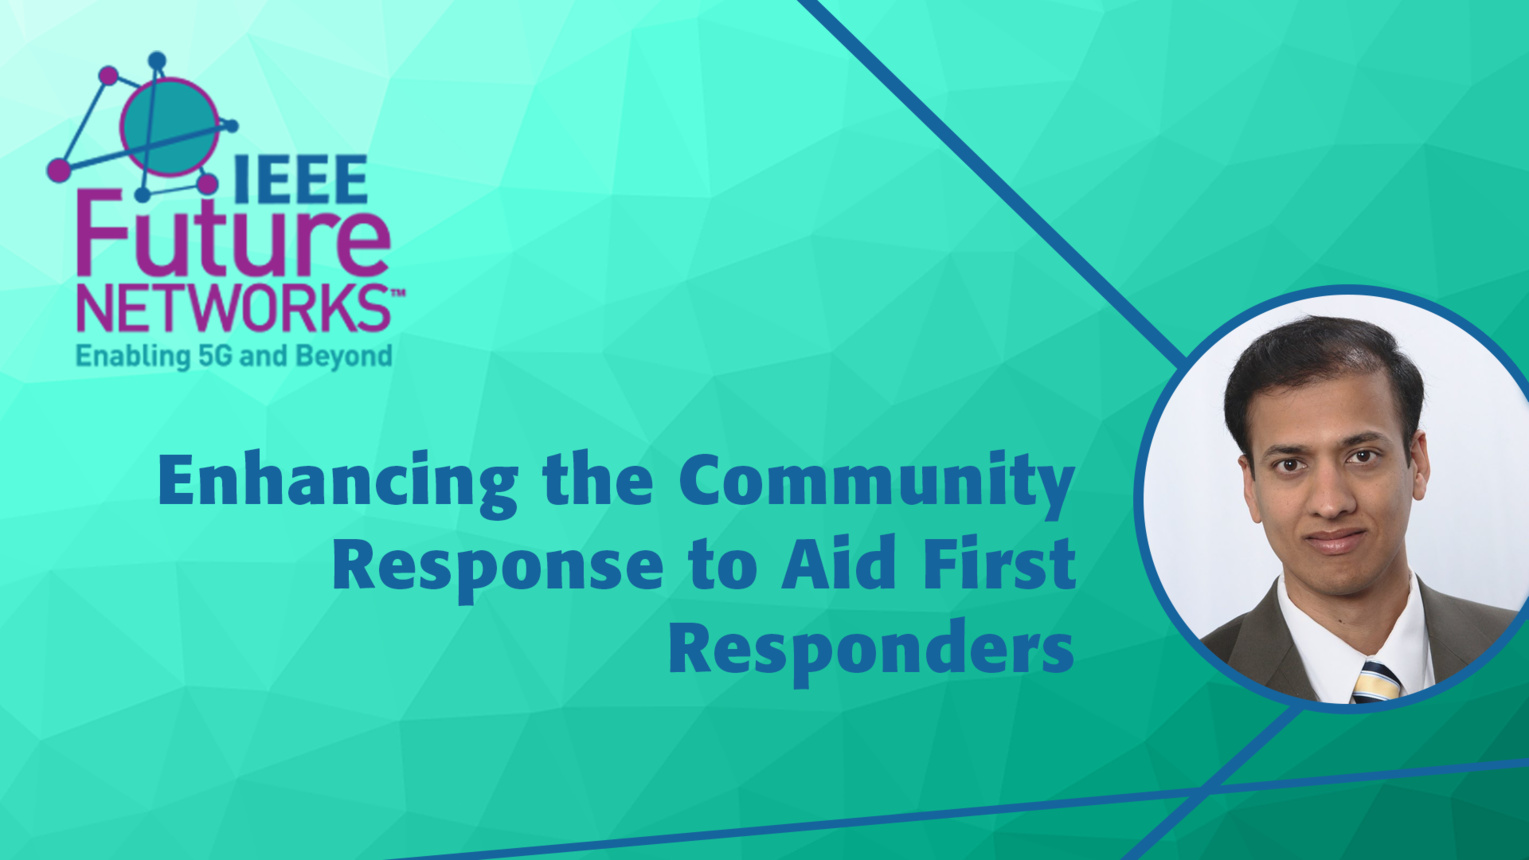 Enhancing the Community Response to Aid First Responders - Thyaga Nandagopal - 5G Technologies for Tactical and First Responder Networks 2018